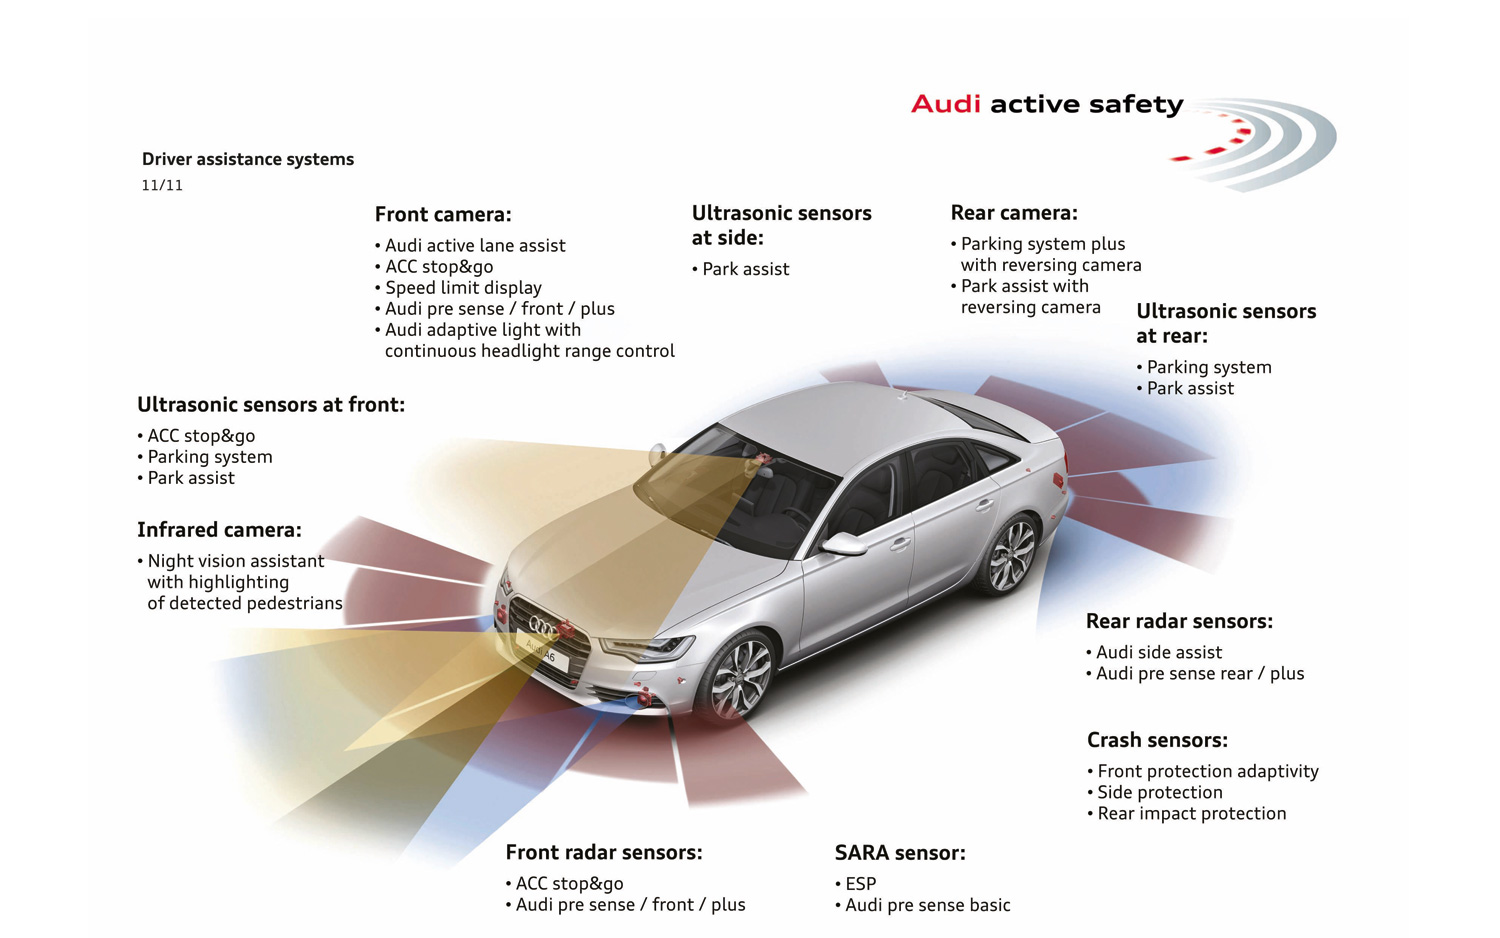 Study Says 66 Percent Of Drivers Want Cars With Active Safety Tech Audi 2 8 Engine Cam Diagram Do You